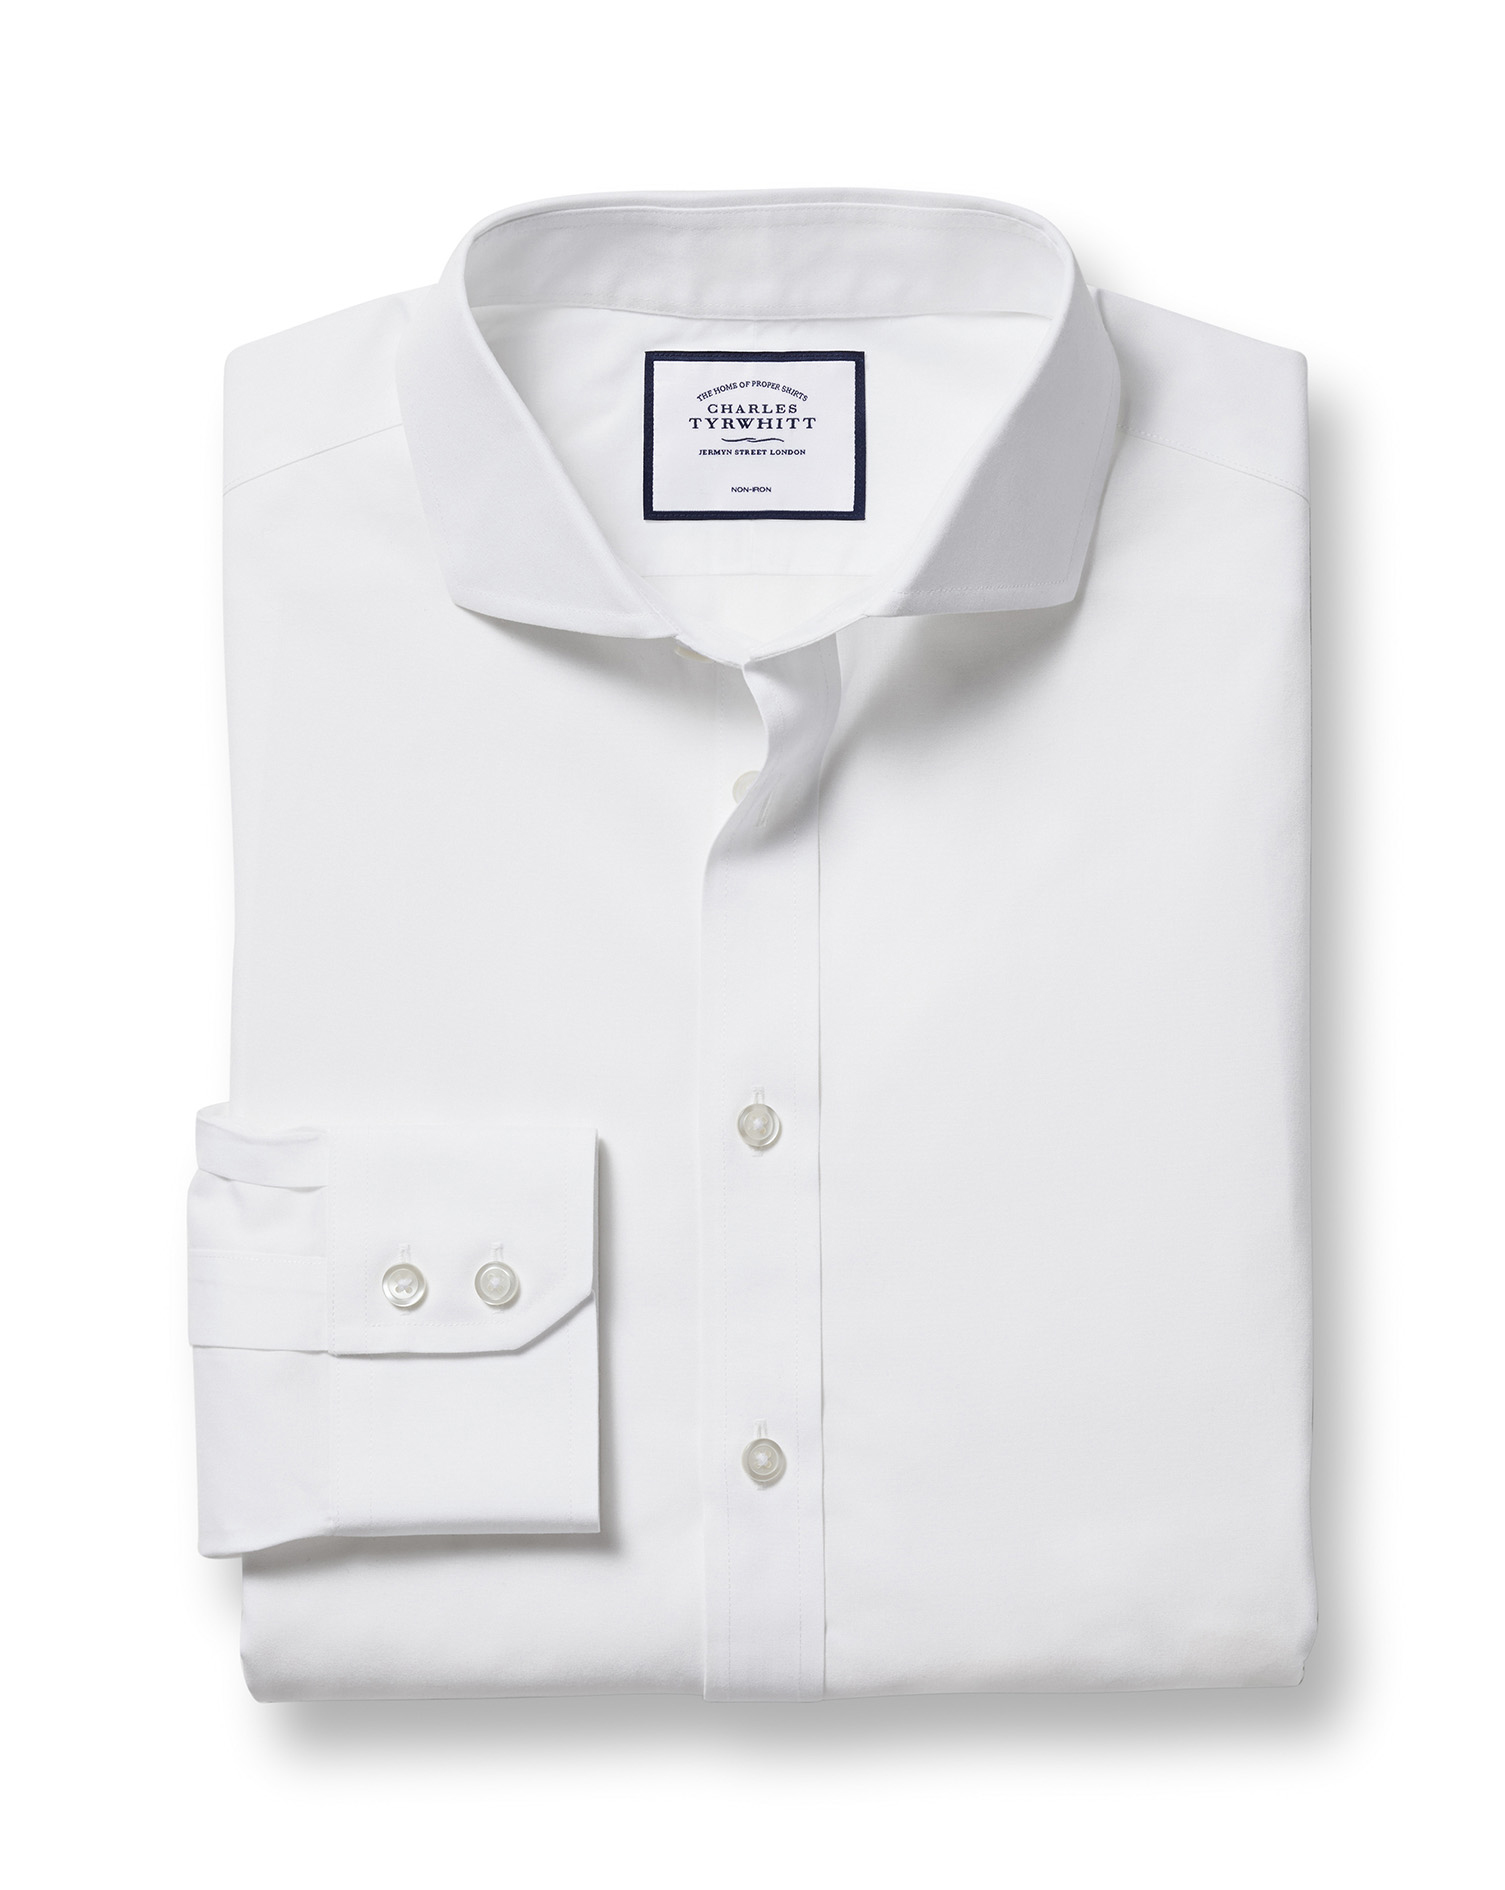 Extra Slim Fit Cutaway Non-Iron Poplin White Cotton Formal Shirt Single Cuff Size 16/34 by Charles T